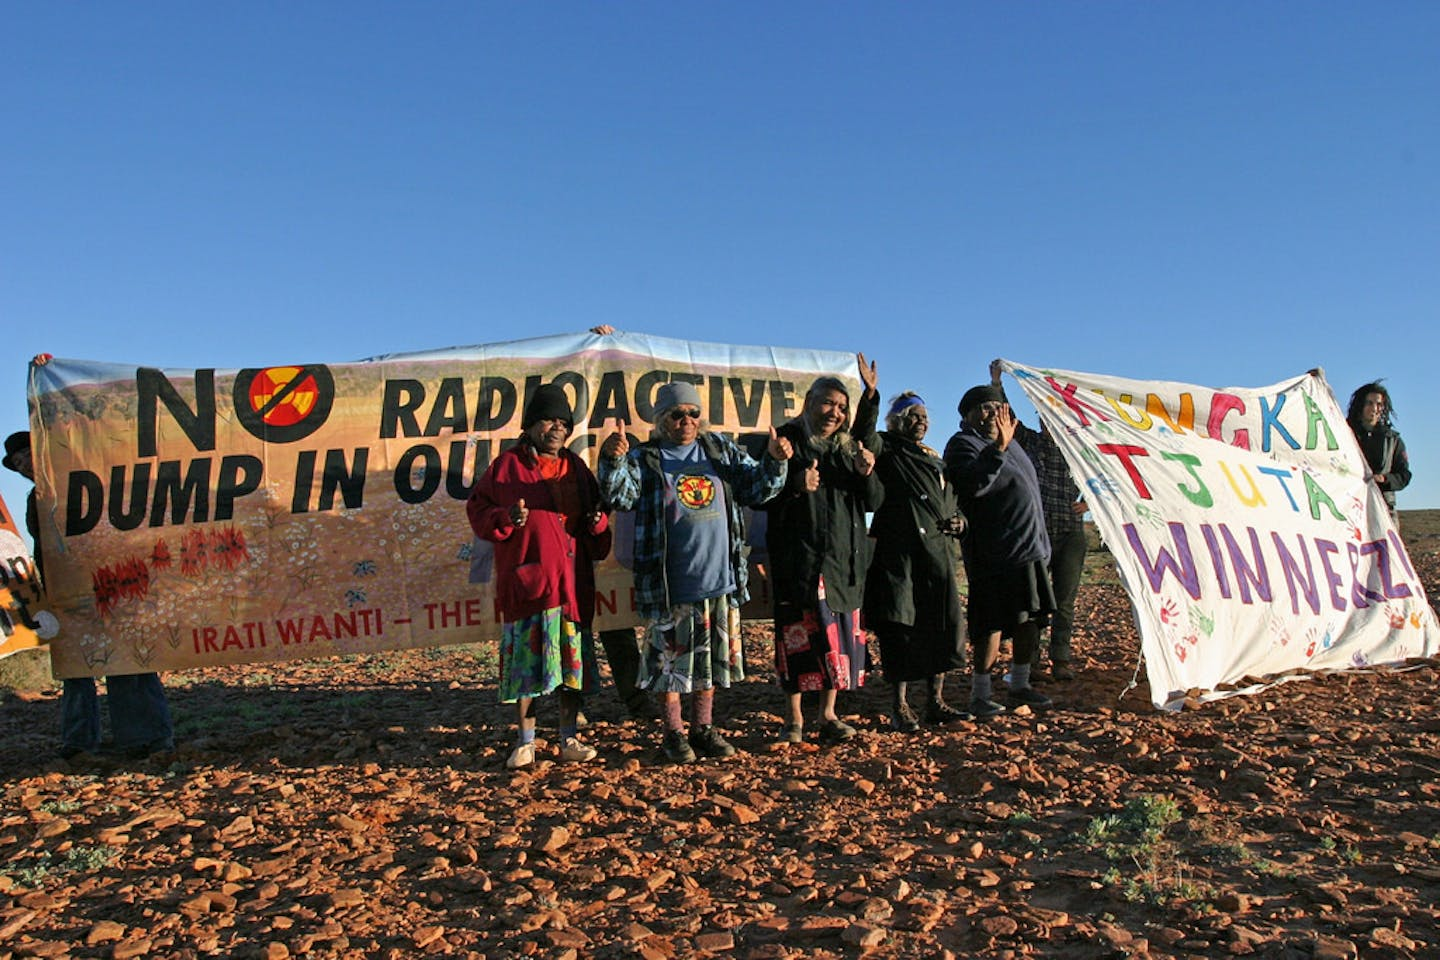 protest against nuclear waste